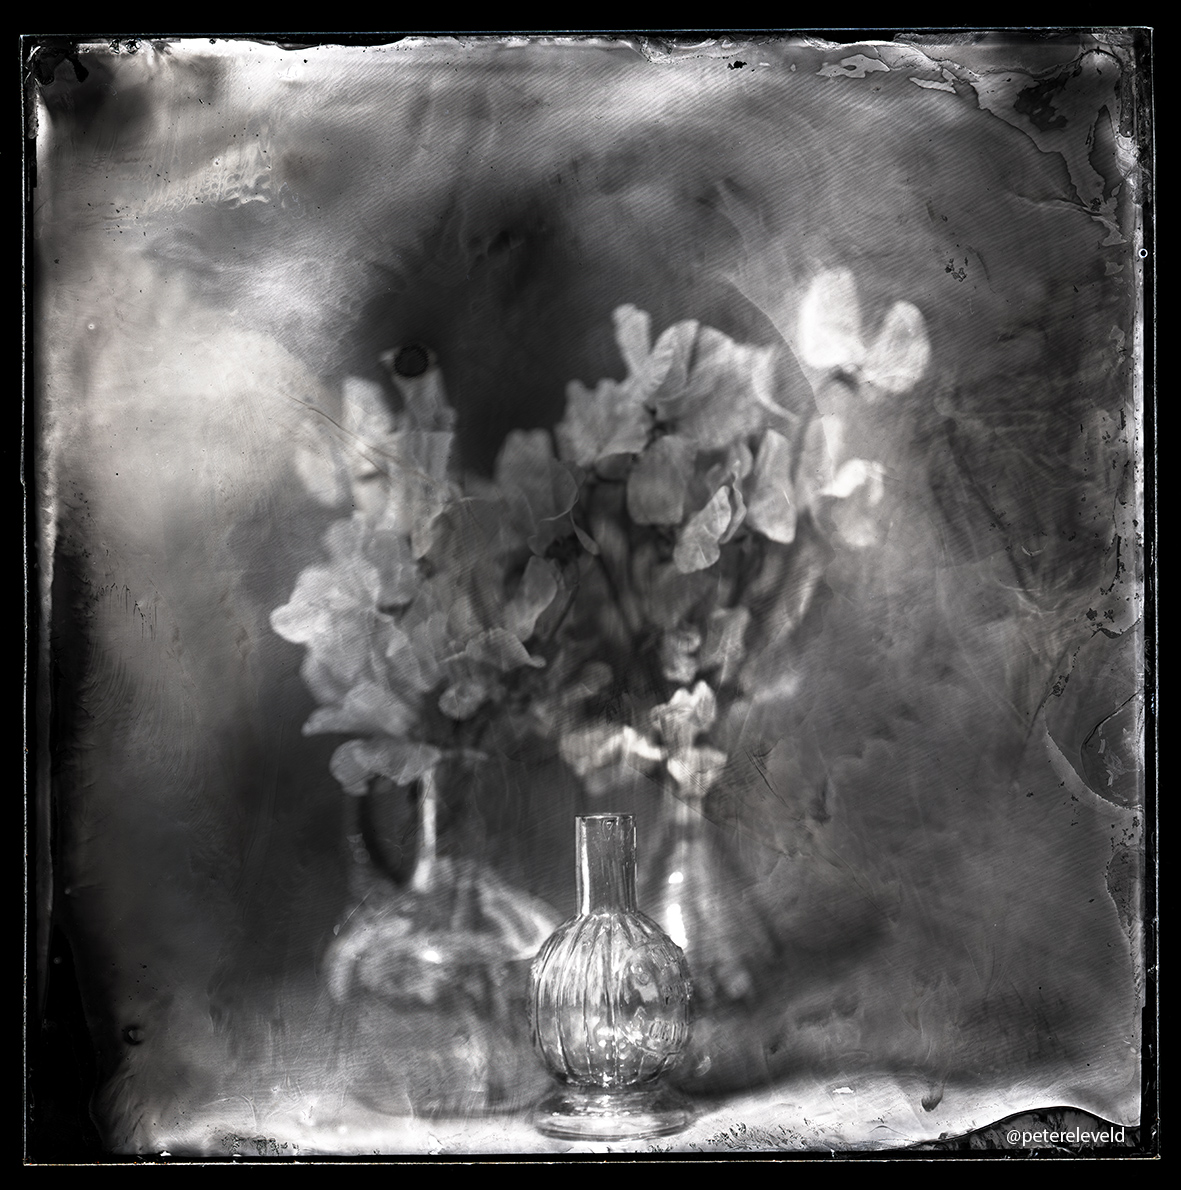 WetPlate photography with piano music.